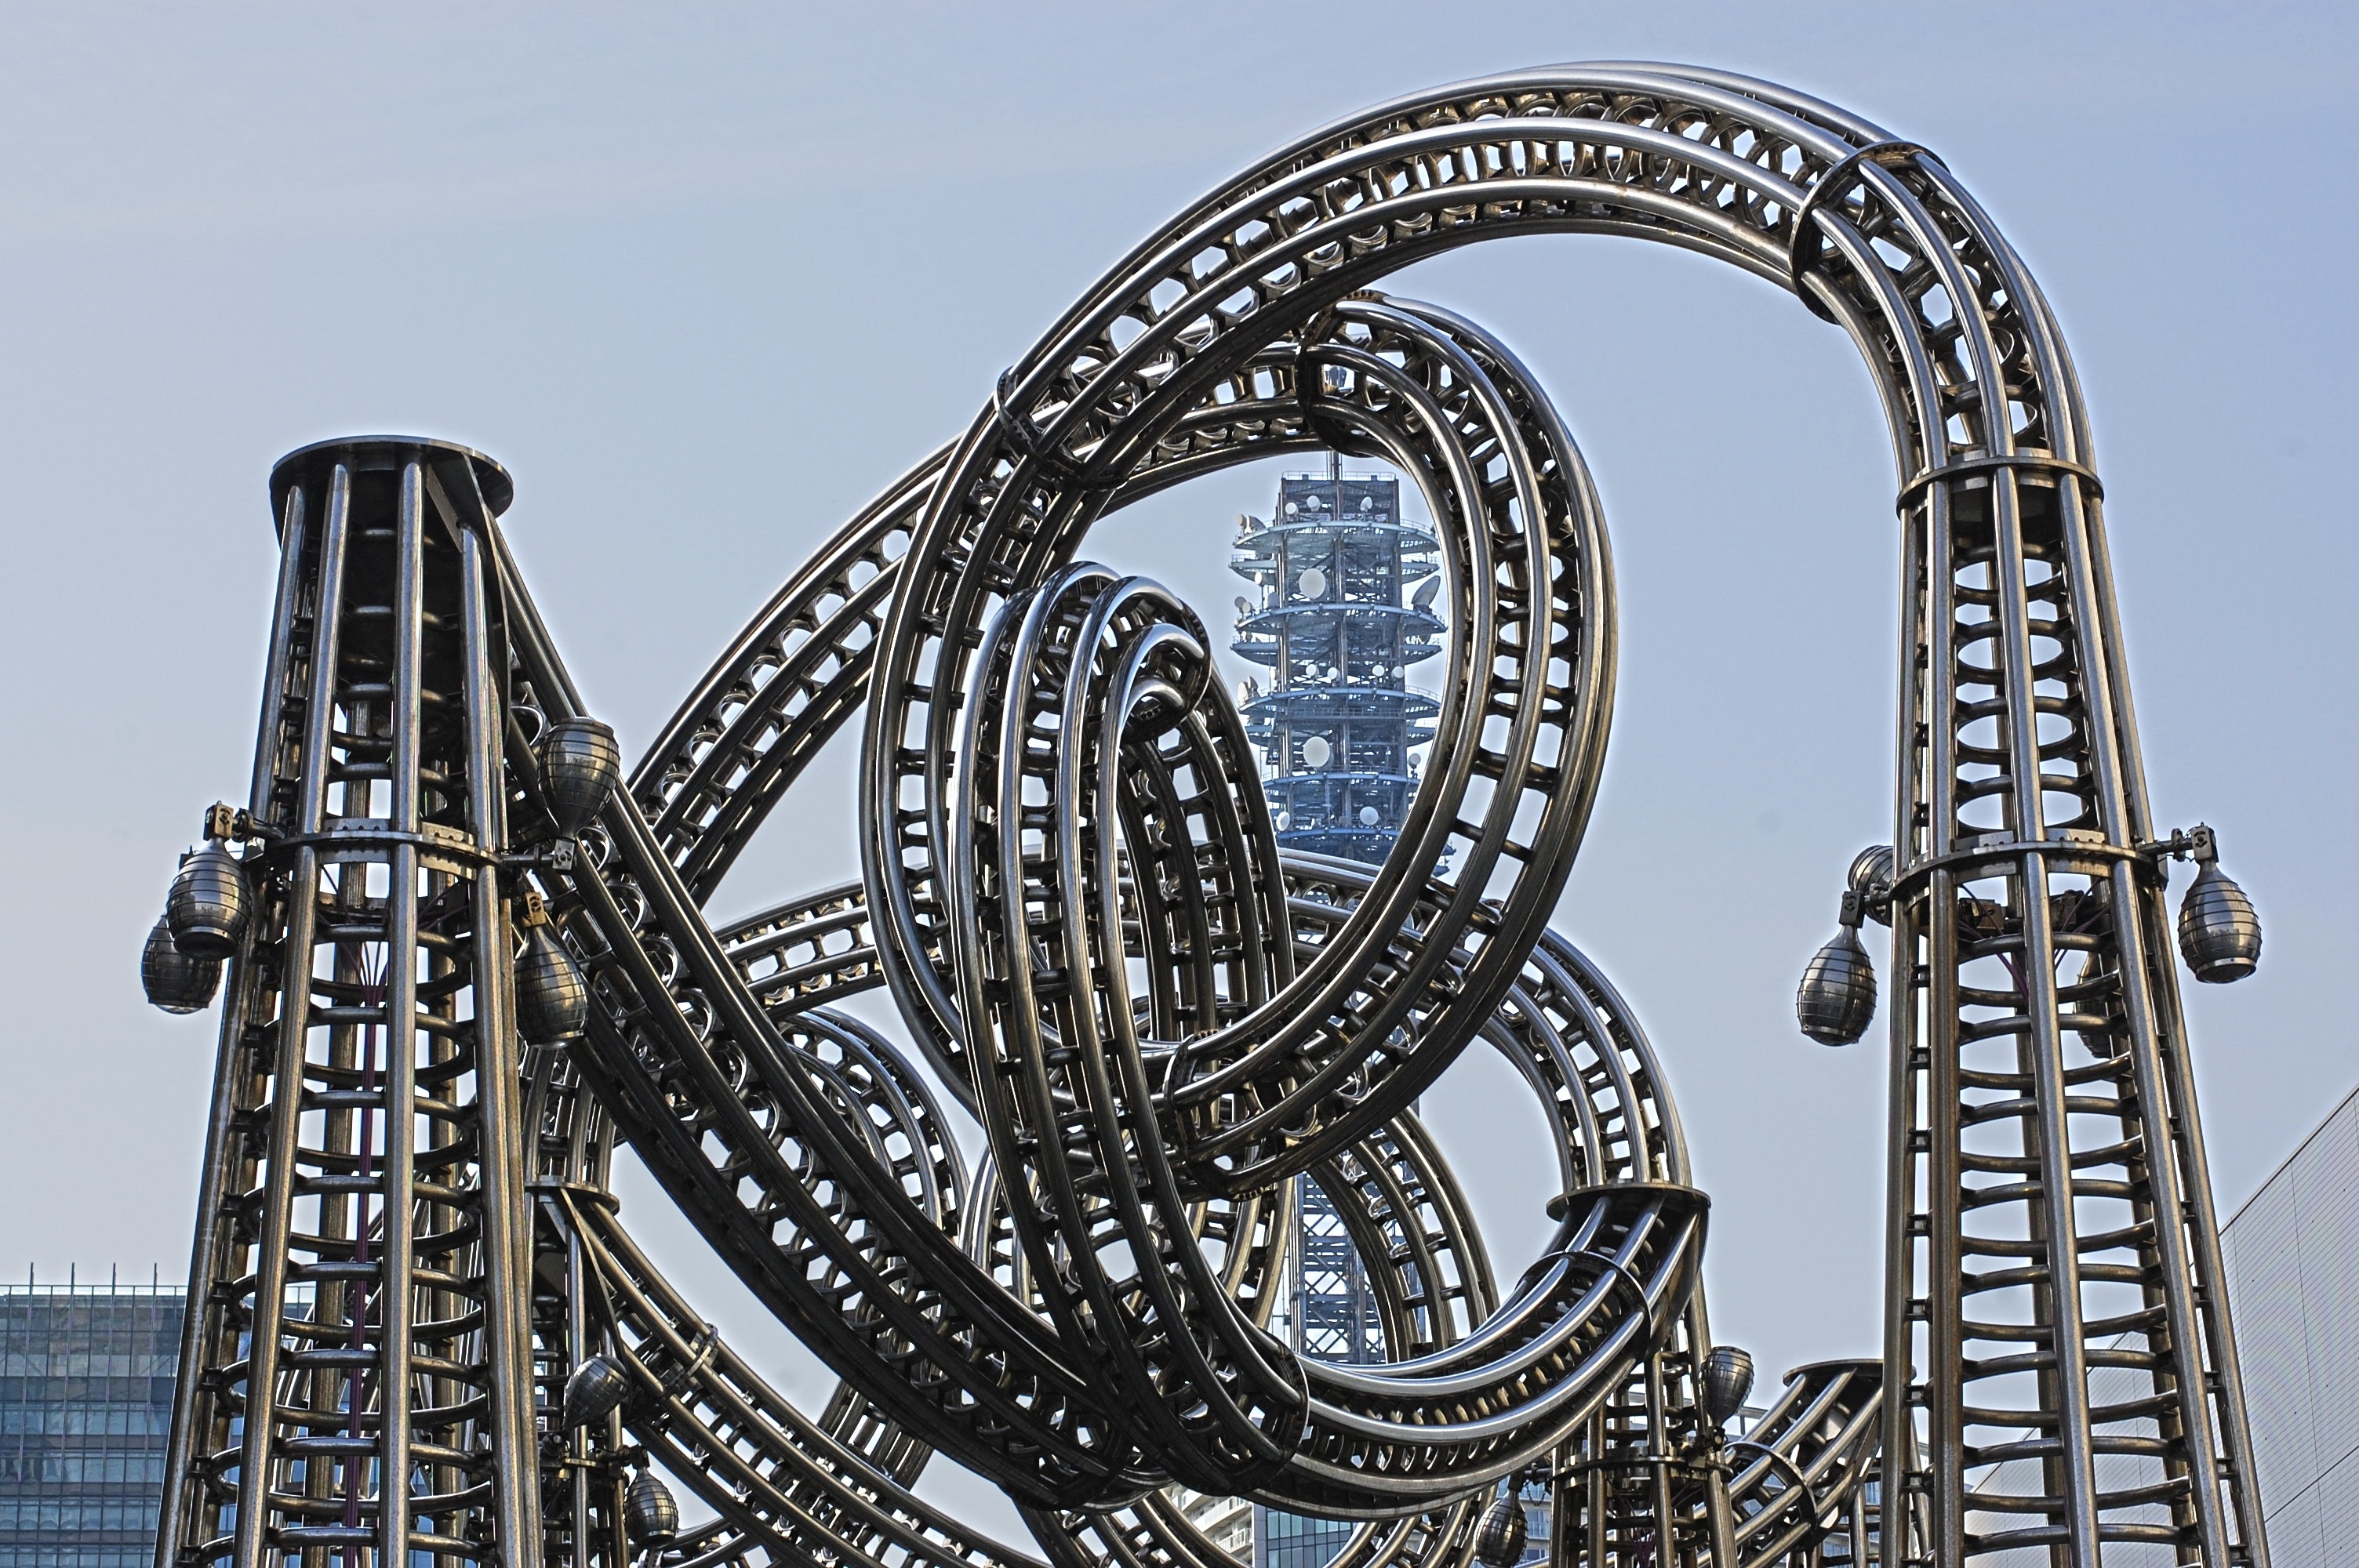 Roller Coaster Track, Architecture, Outdoors, Urban, Tower, HQ Photo